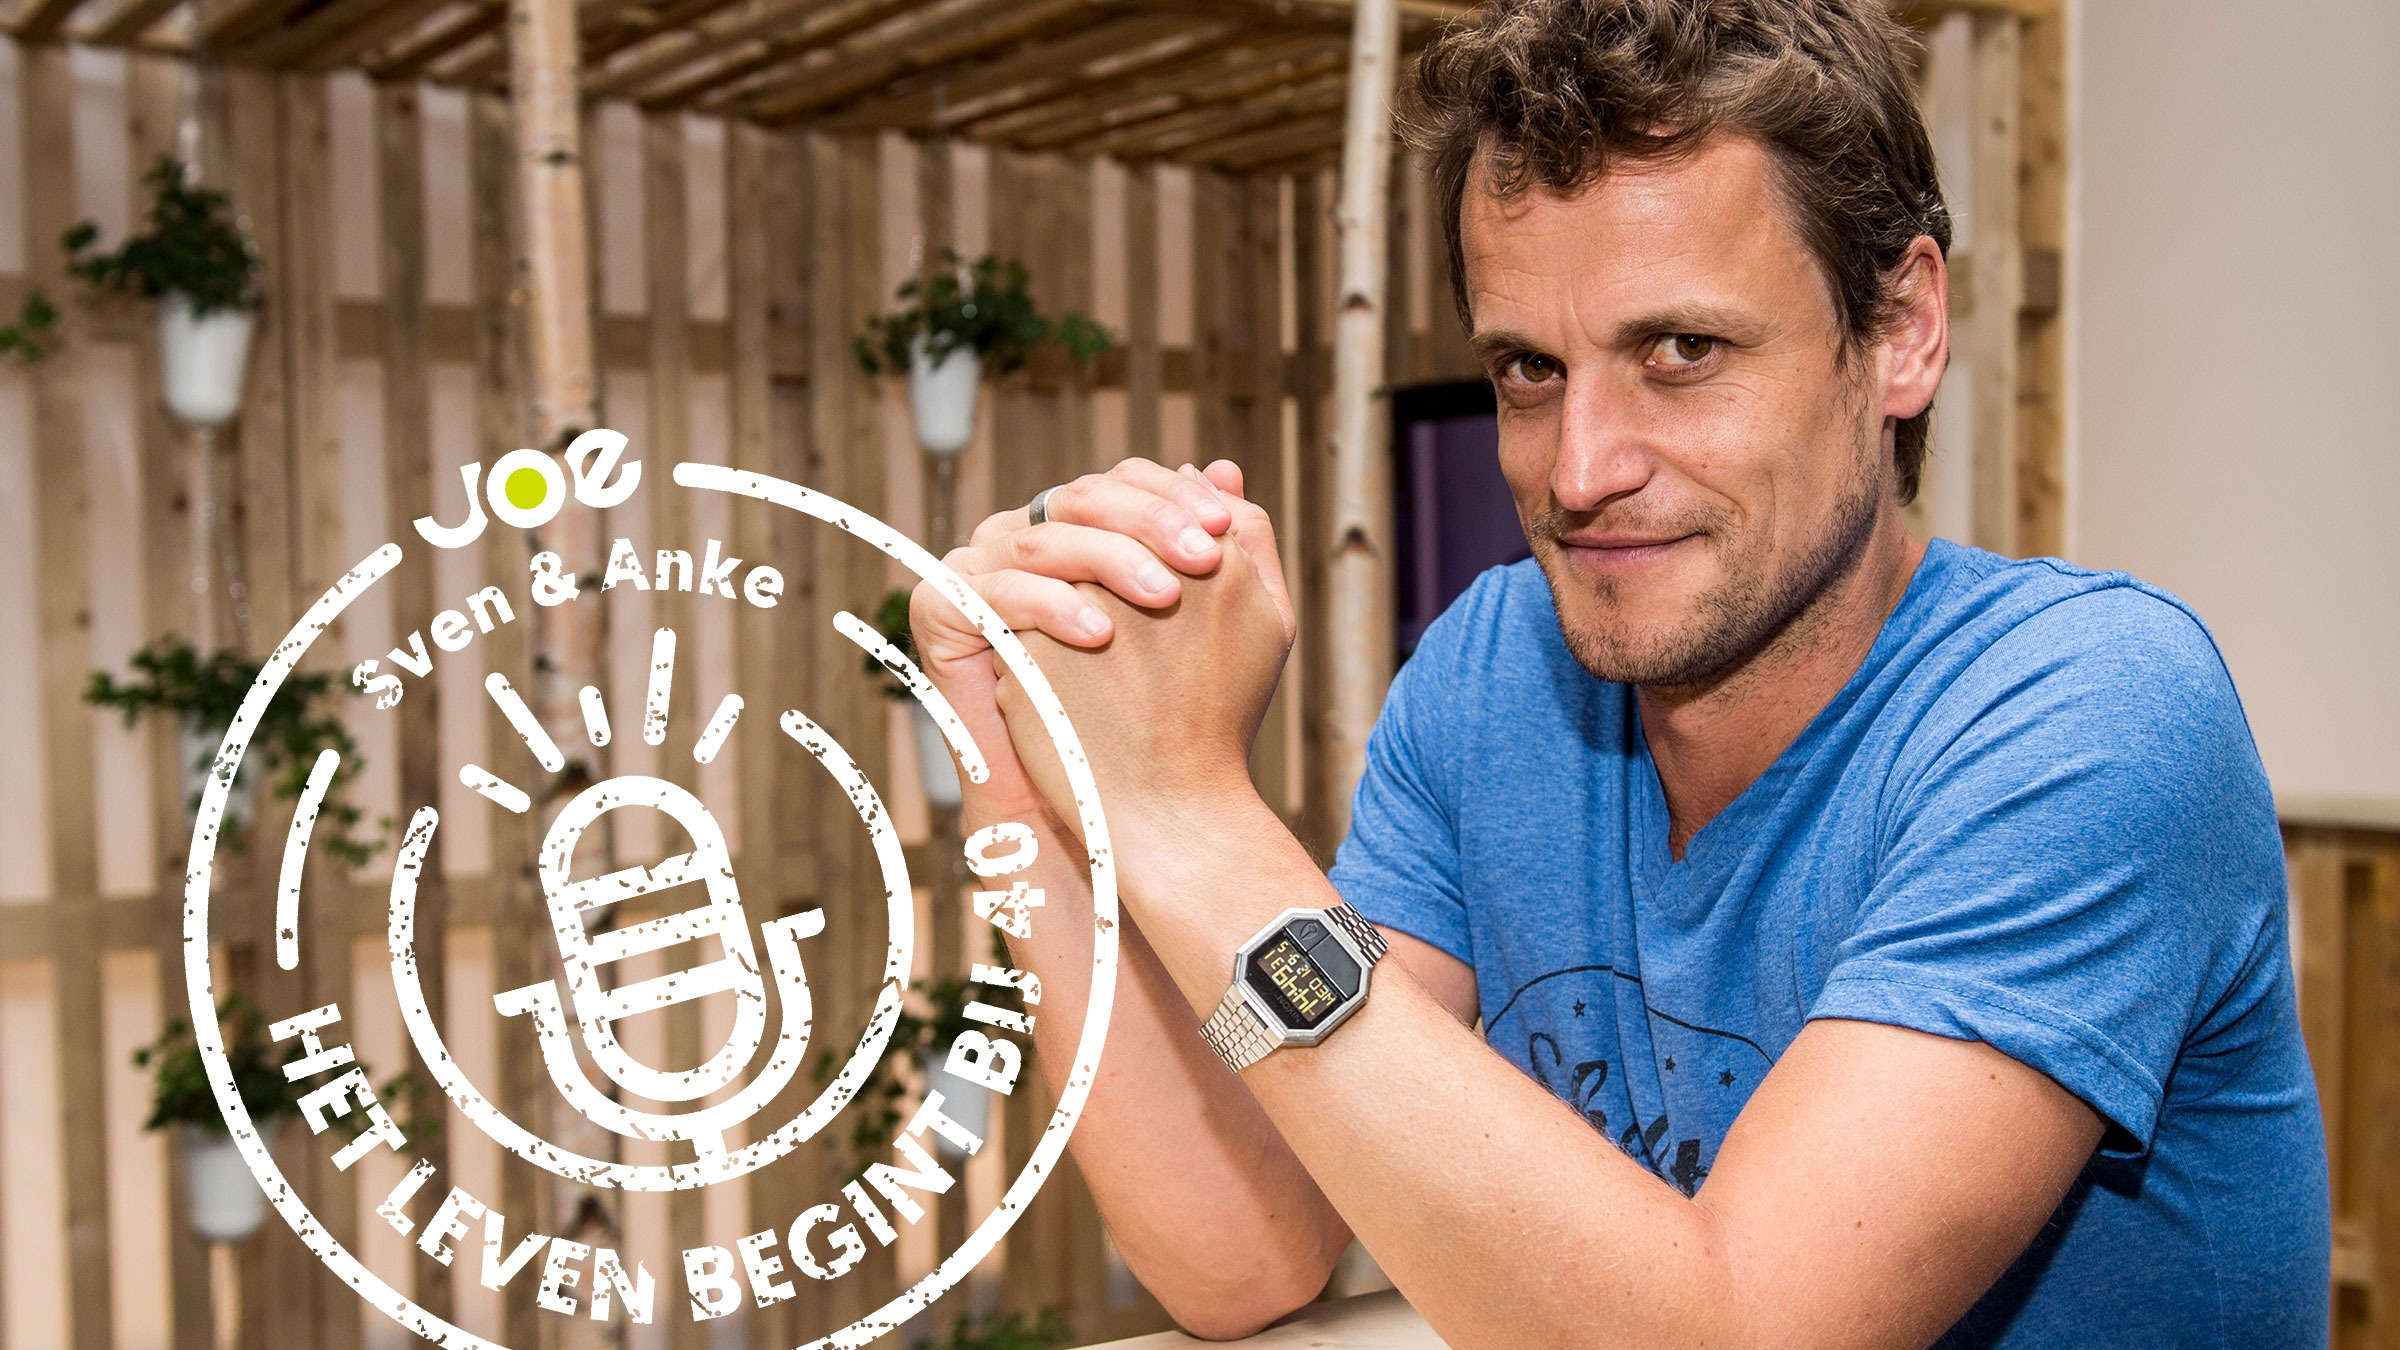 Joe sven anke podcast stempel